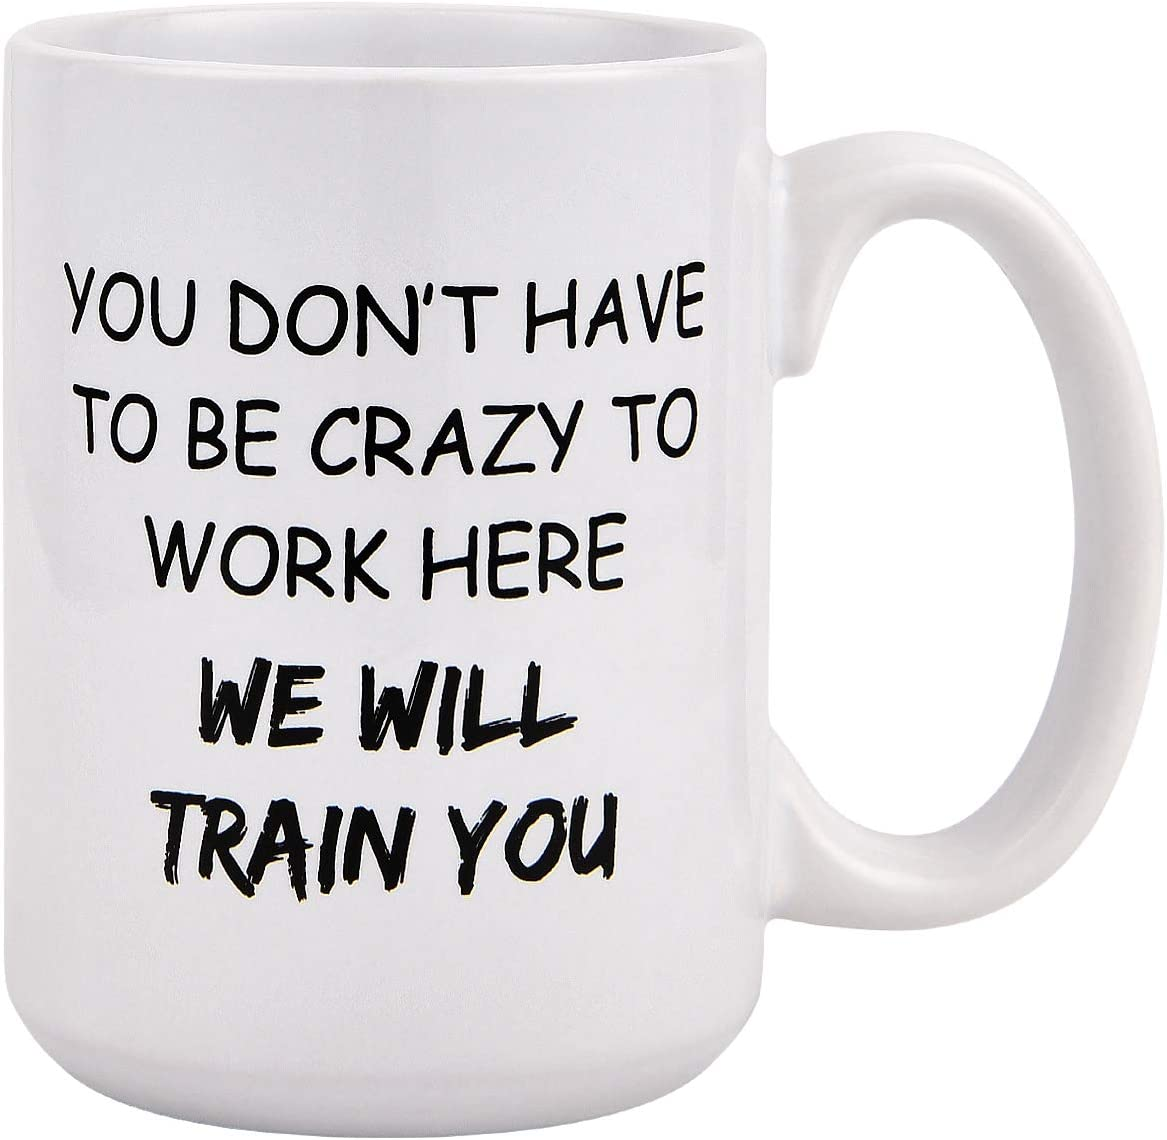 The Office Coffee Mug You Don't Have To Be Crazy To Work Here We Will Train You with Cheerful Quote Novelty Mug for Boss Coworks Office 15Oz